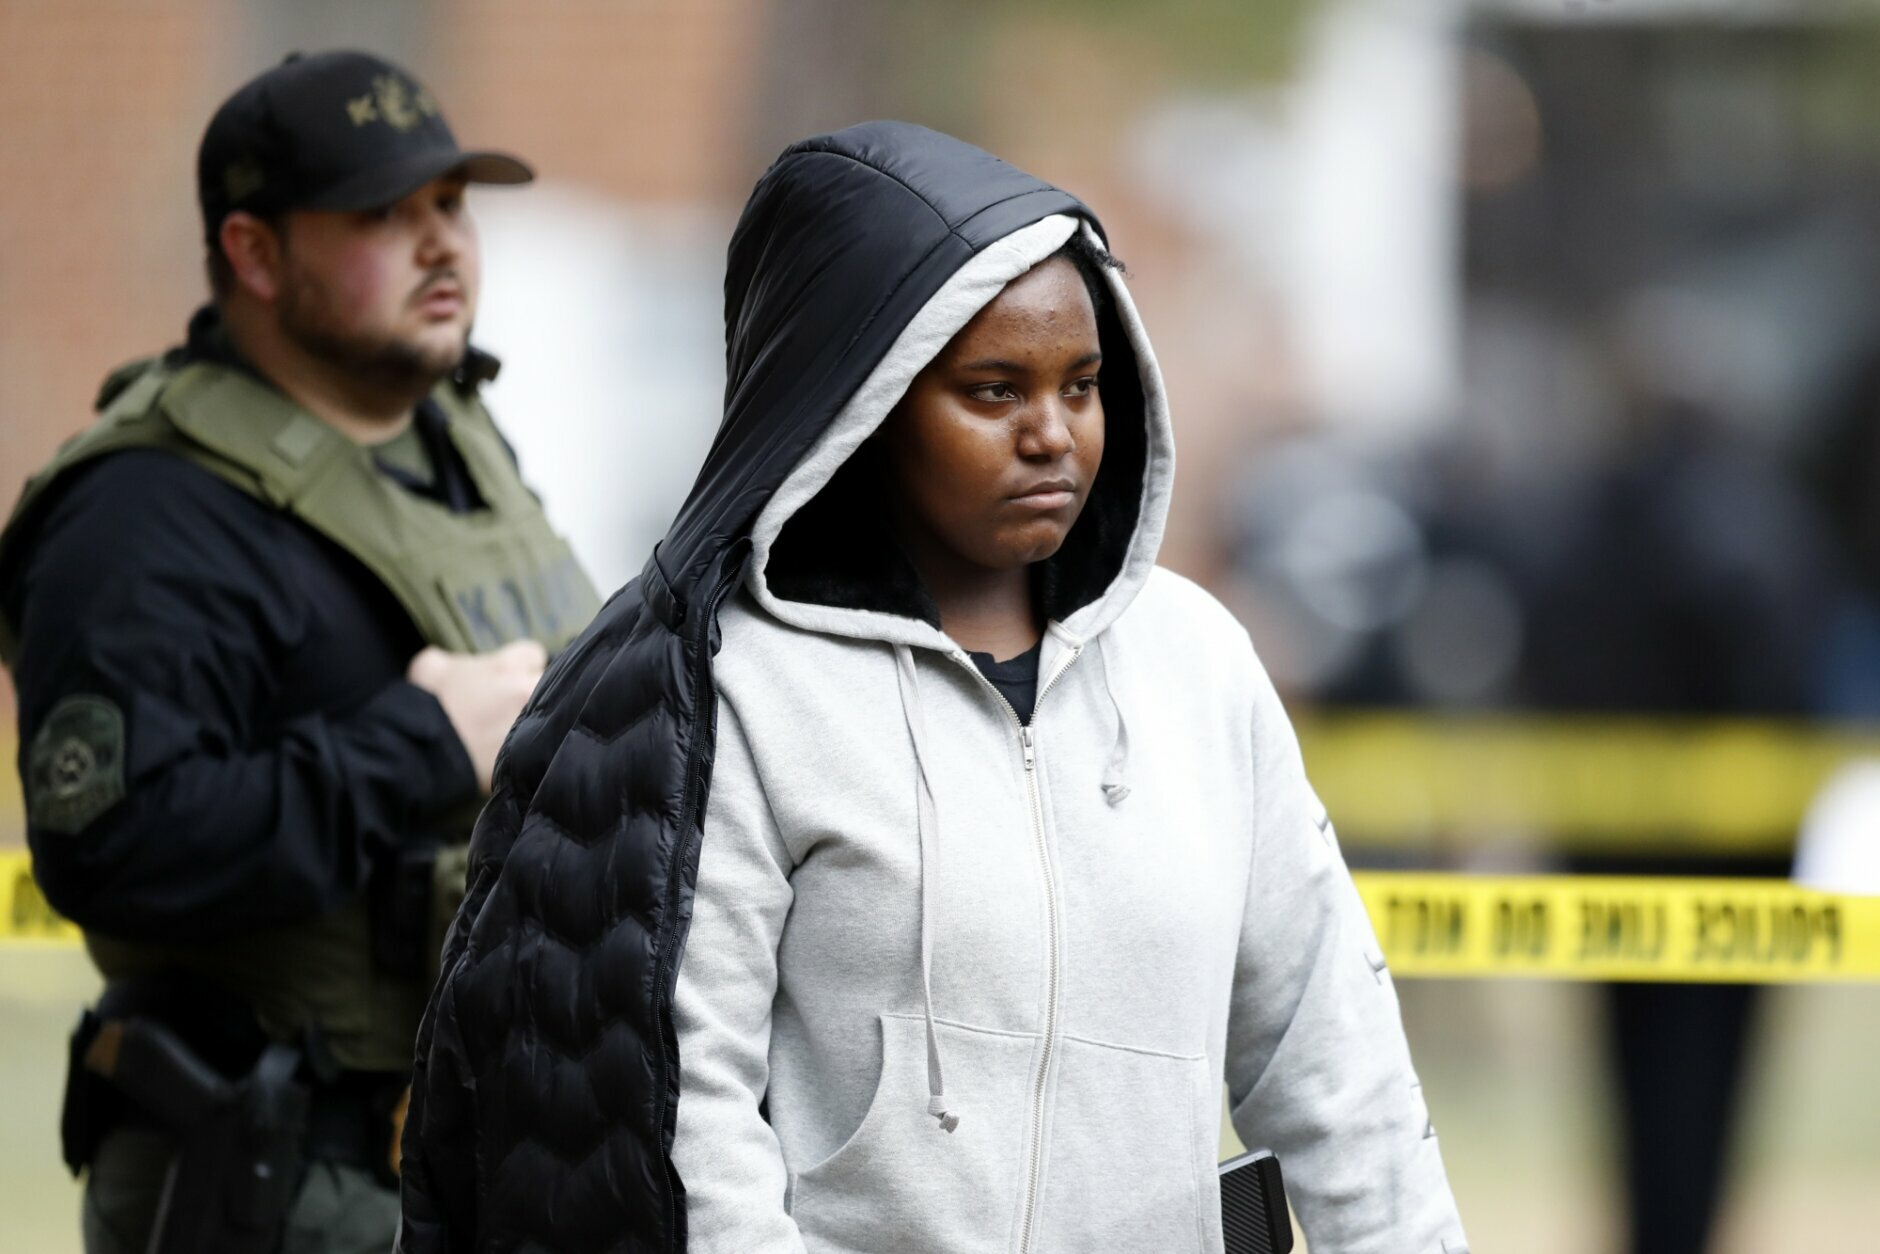 A person reacts while talking to security officers at an apartment complex near the scene of a shooting, Wednesday, Feb. 12, 2020, in Baltimore. Two law enforcement officers with a fugitive task force were injured and a suspect died in the shooting, the U.S. Marshals Service said. (AP Photo/Julio Cortez)